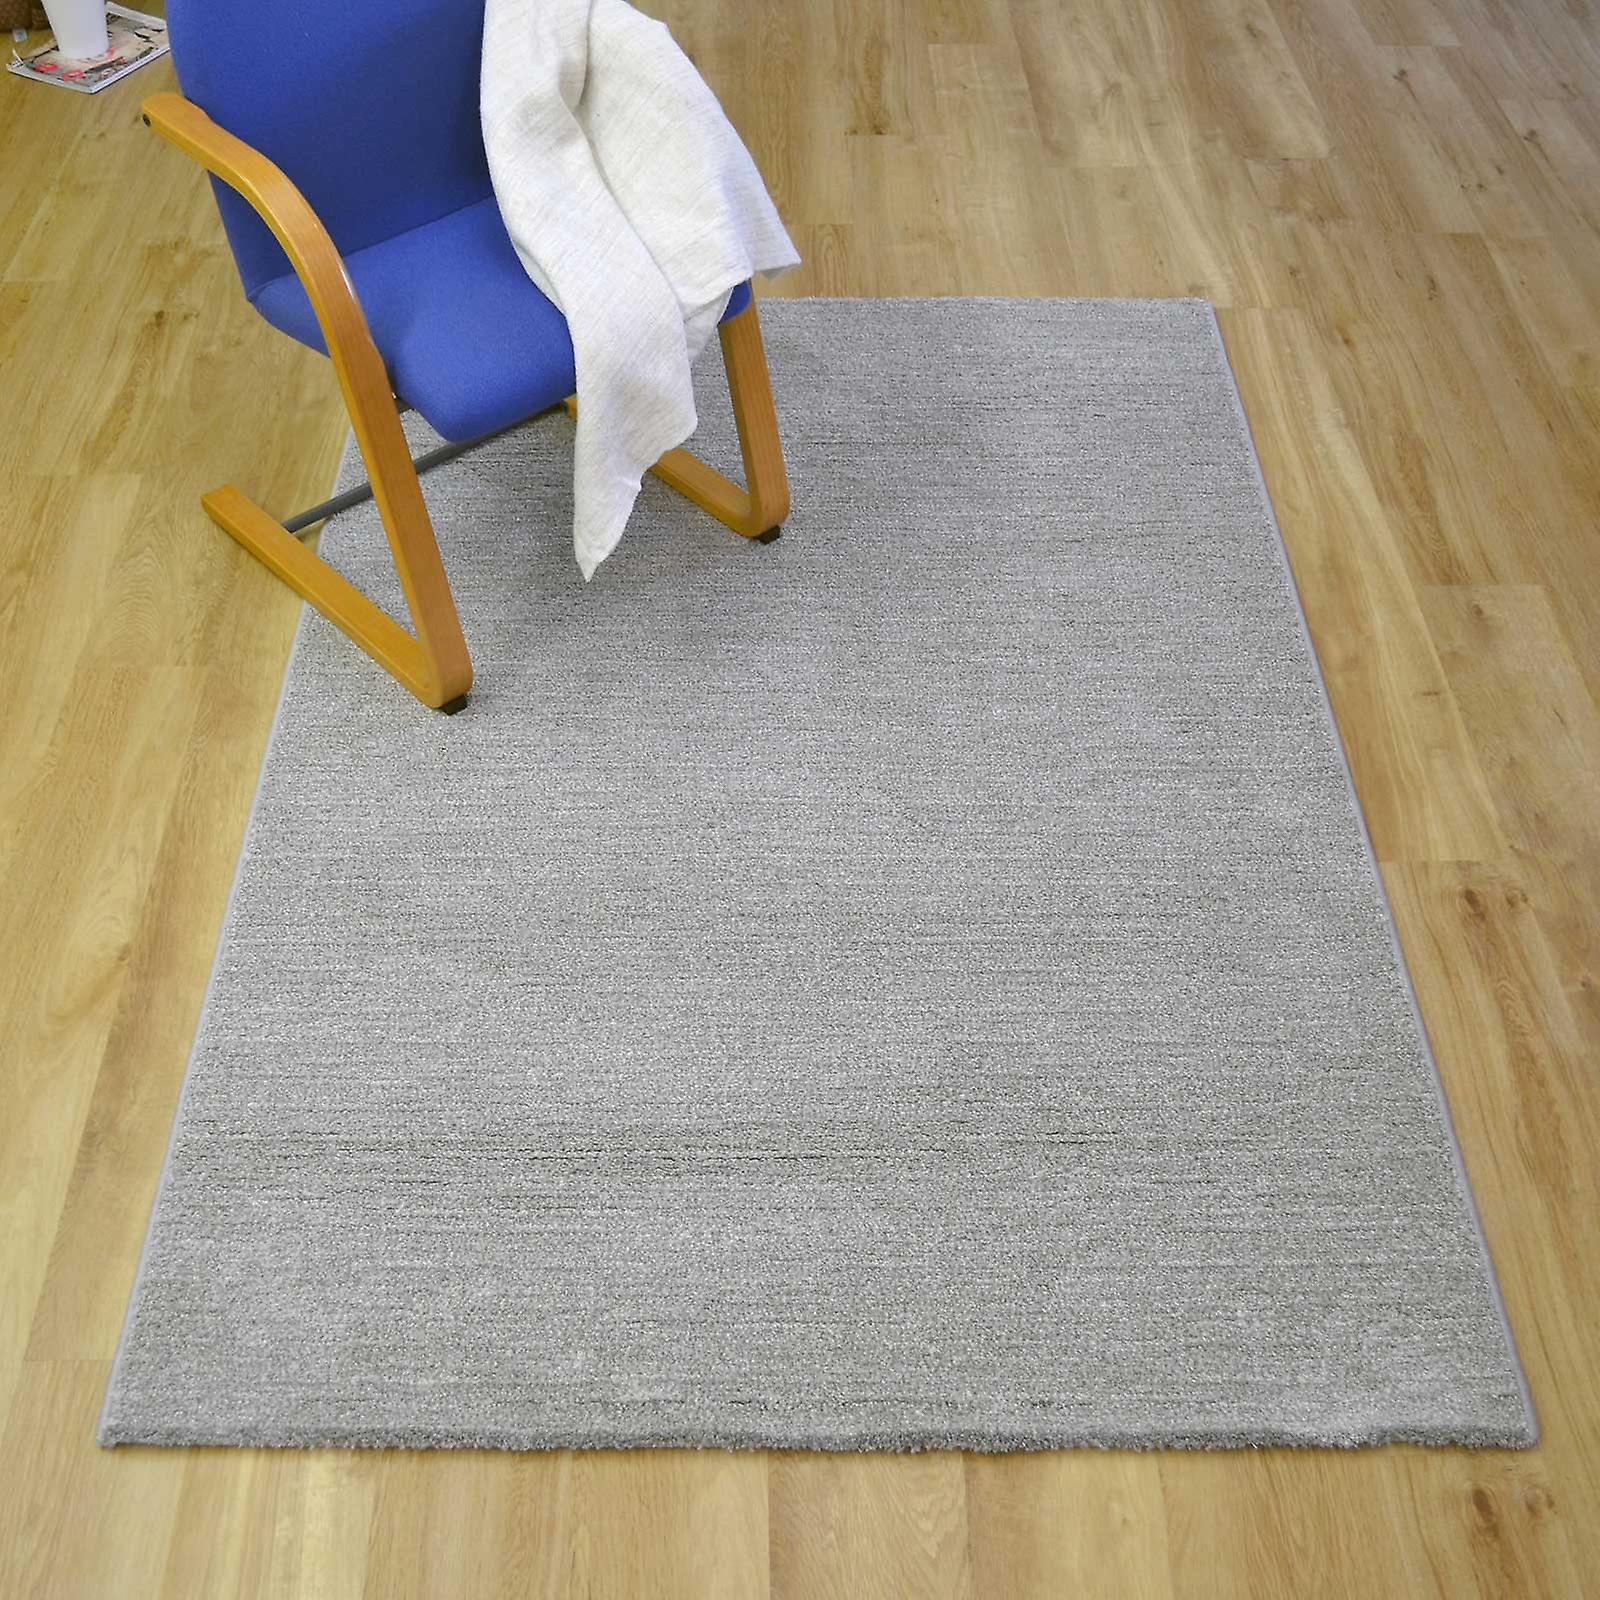 Skald Rugs 49001 5262 In lumière argent